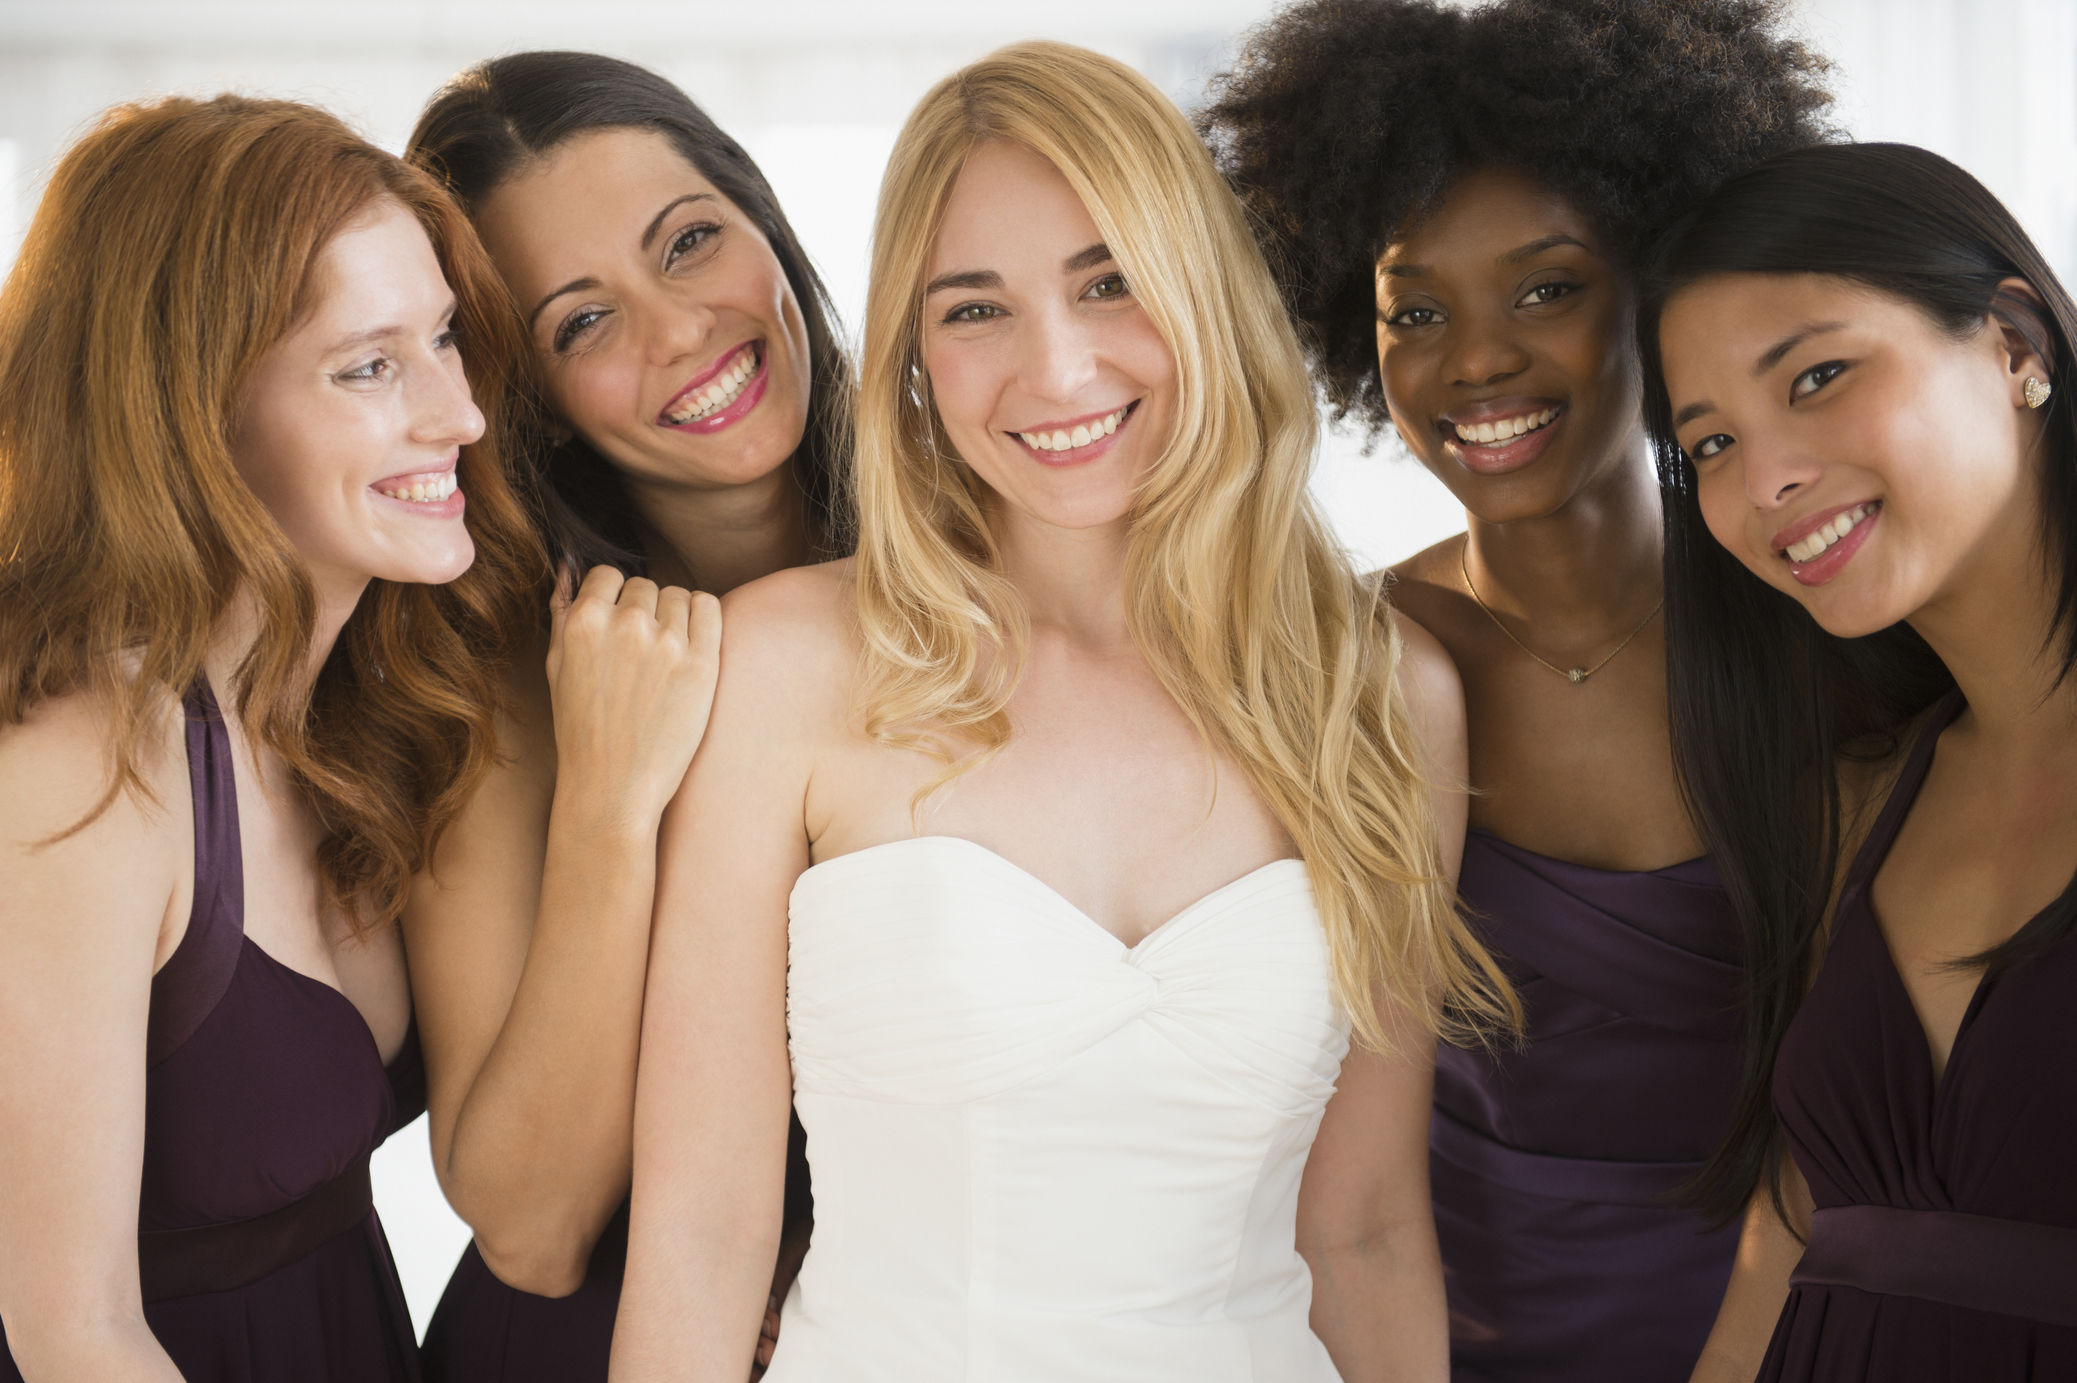 The Unexpected Cost of Being In Your Best Friend's Wedding